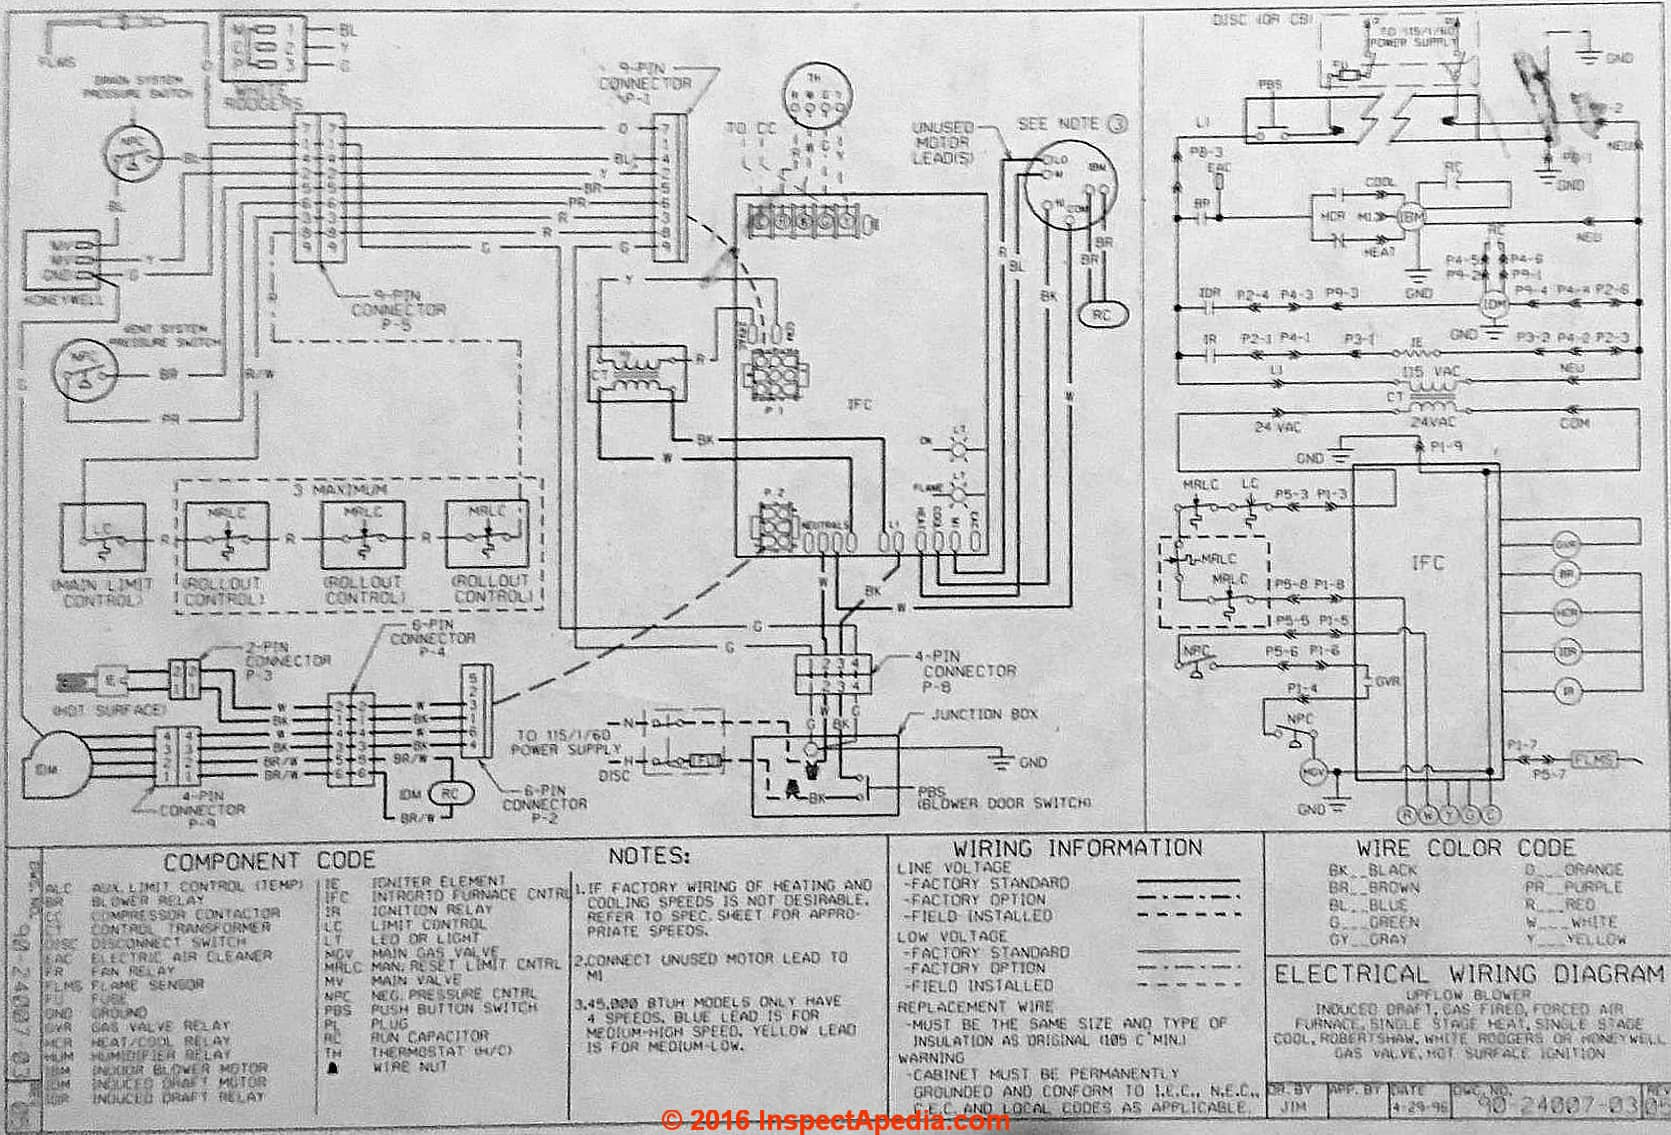 Rheem_AHU_Wiring_Diagram_IAP package unit wiring diagram a c relay wiring diagram \u2022 free wiring rheem package unit wiring diagram at reclaimingppi.co